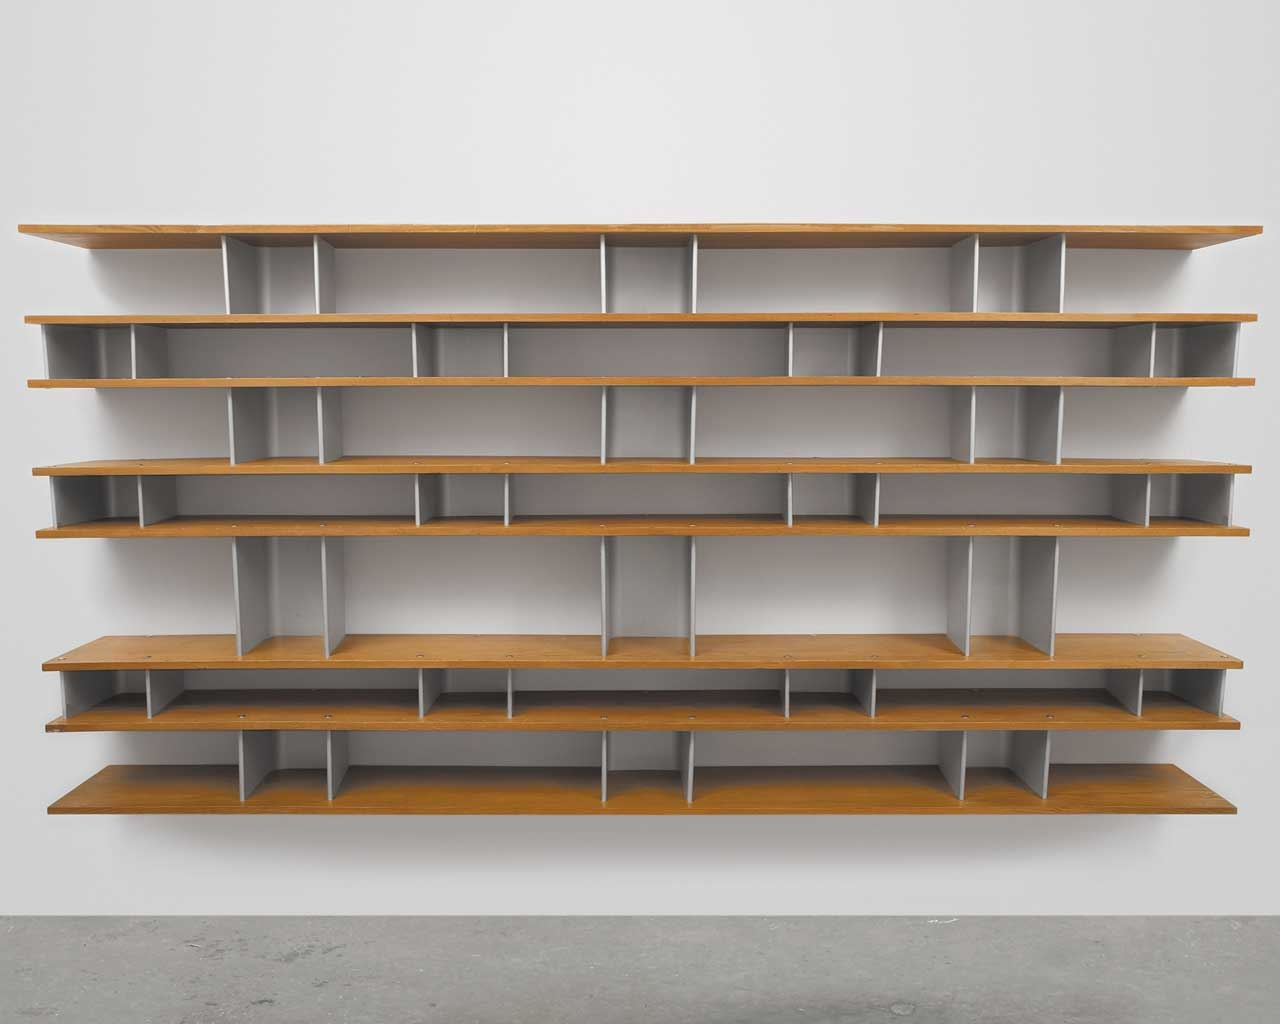 Wall Sized Bookshelves Idi Design Throughout Full Wall Bookcases (#15 of 15)